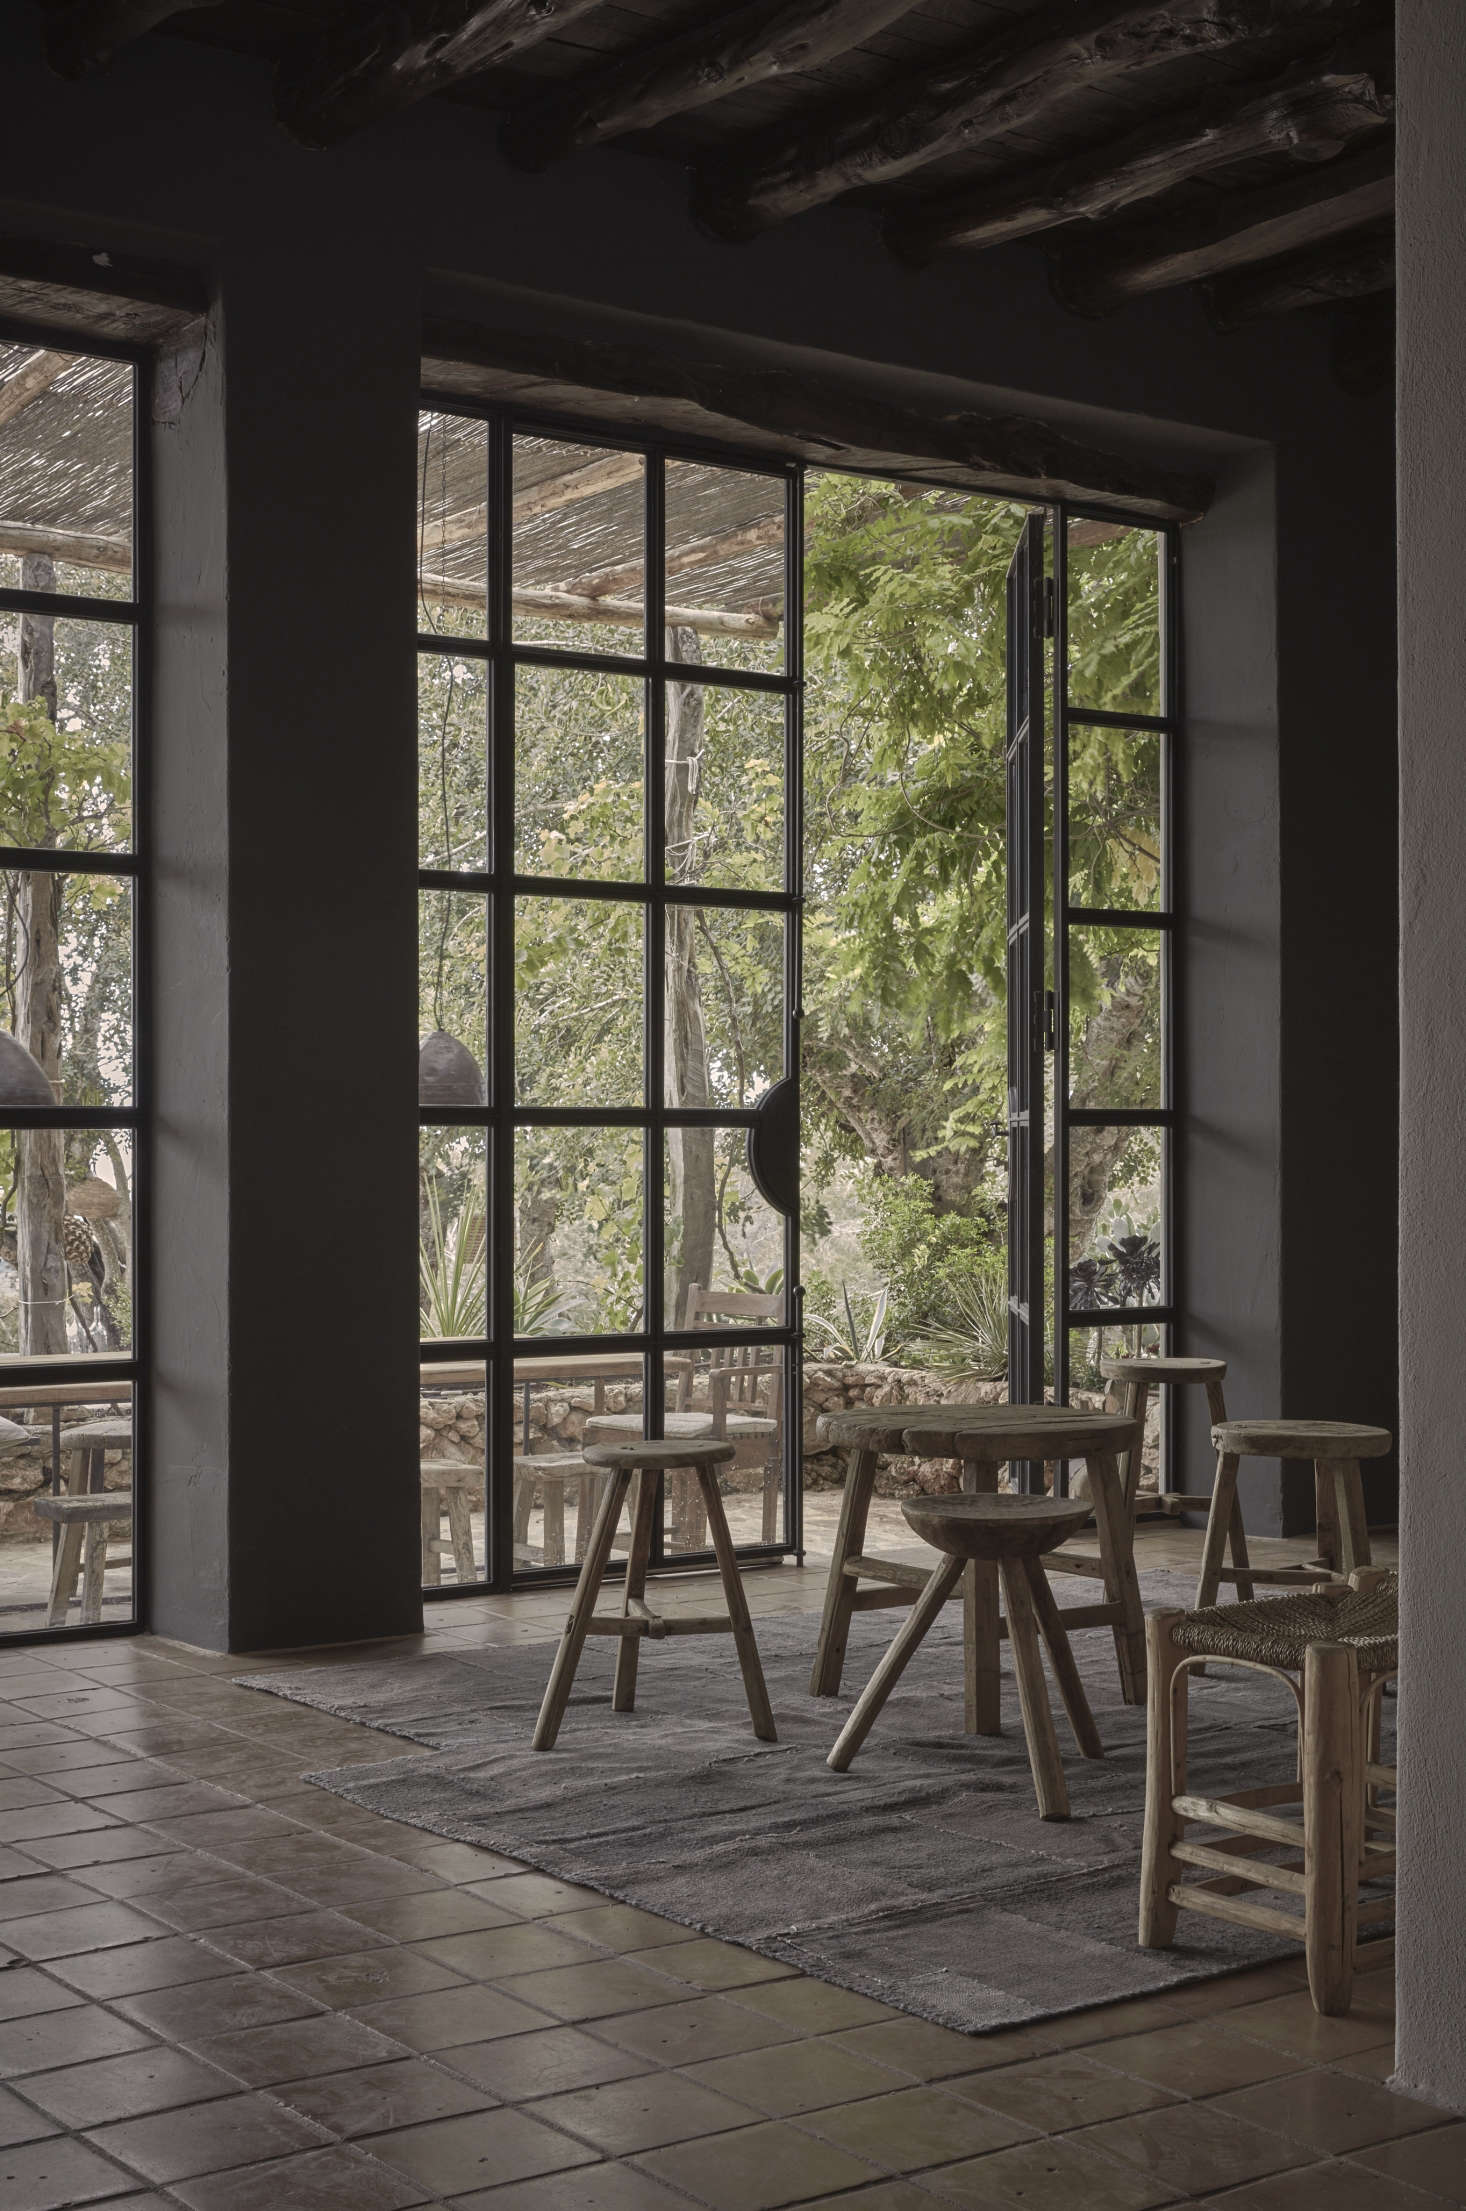 Remodeling 101: Steel Factory-Style Windows and Doors